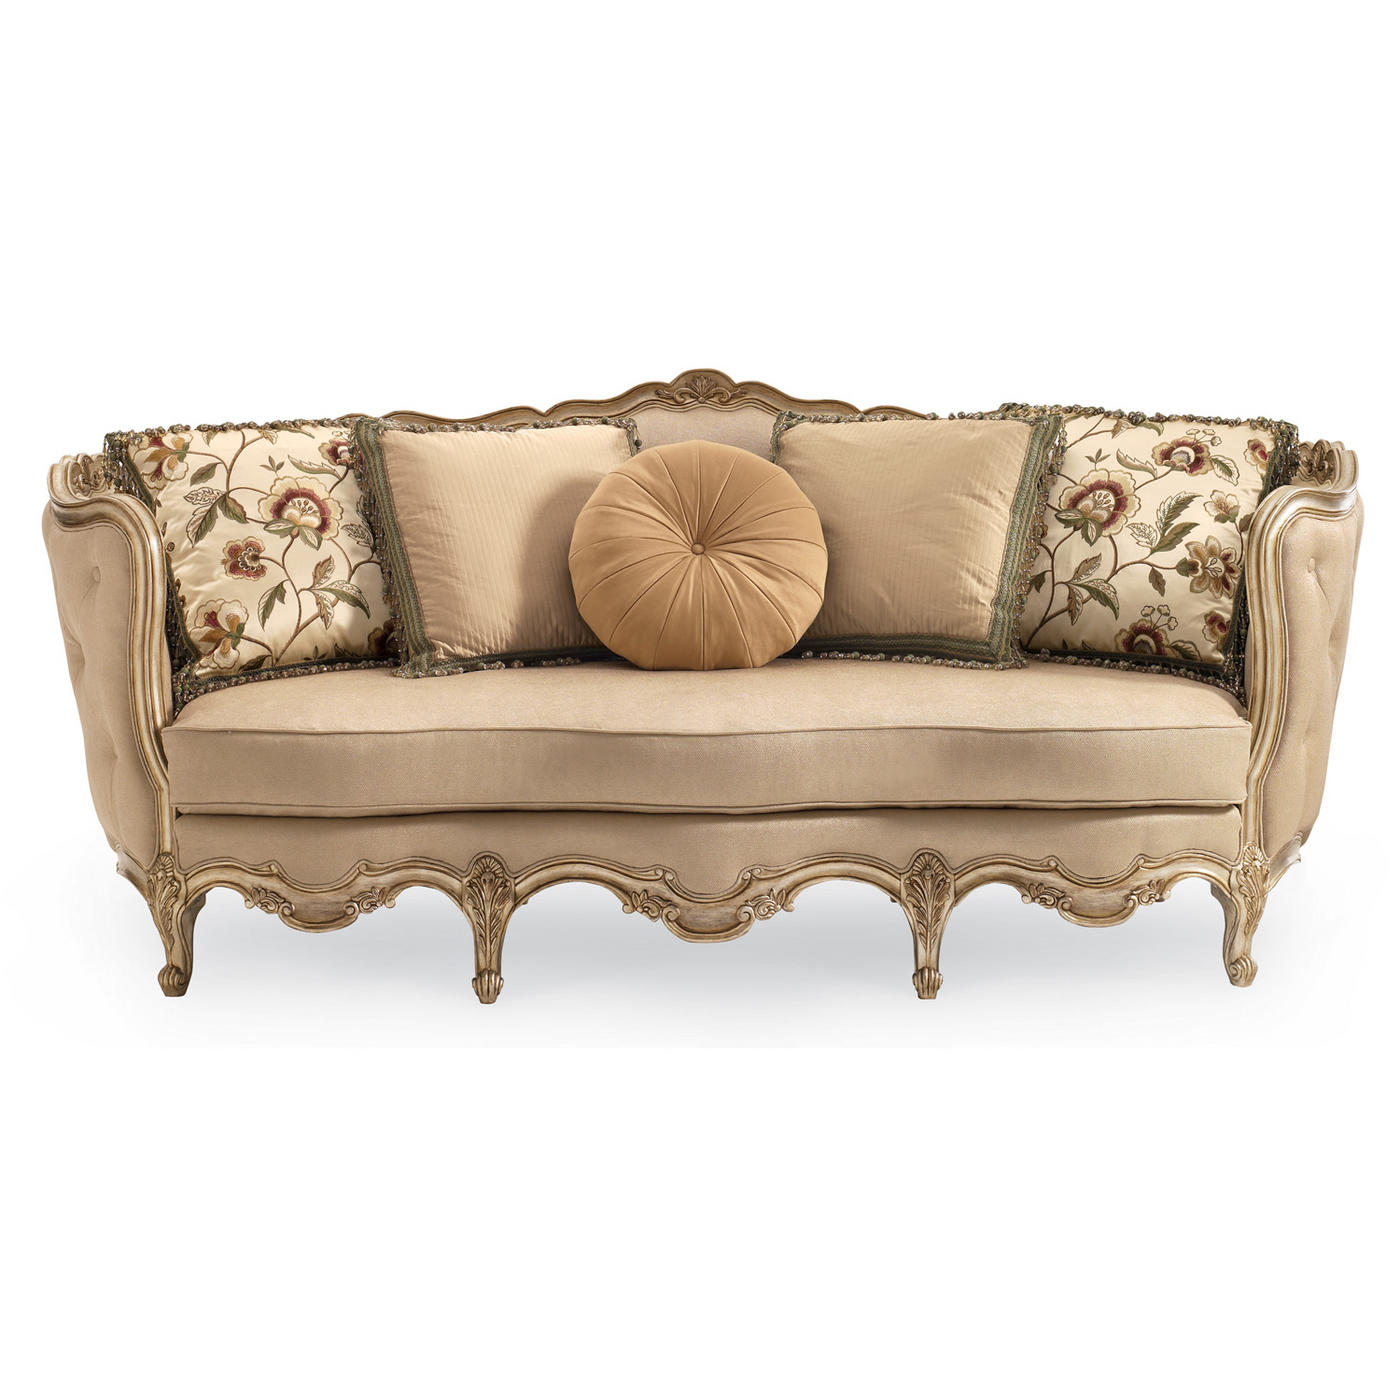 wooden carving sofa online india natural milan kingston 2 seat set compositions living florence carved wood by